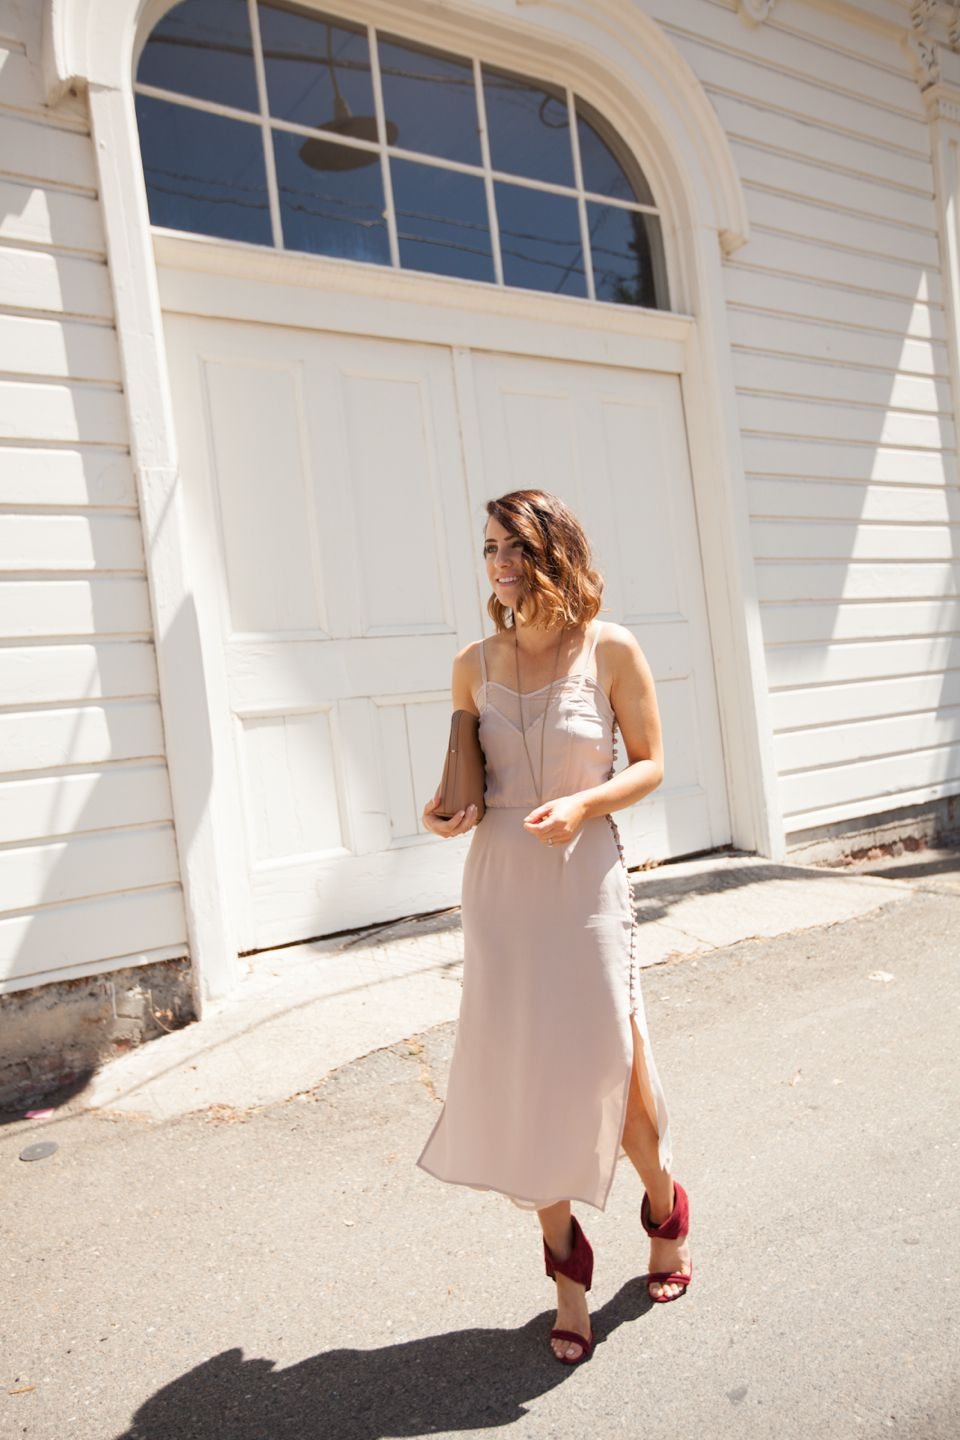 Pale pink dress for wedding guest  Riches for Rags  Boho style  Pinterest  Wedding guest attire